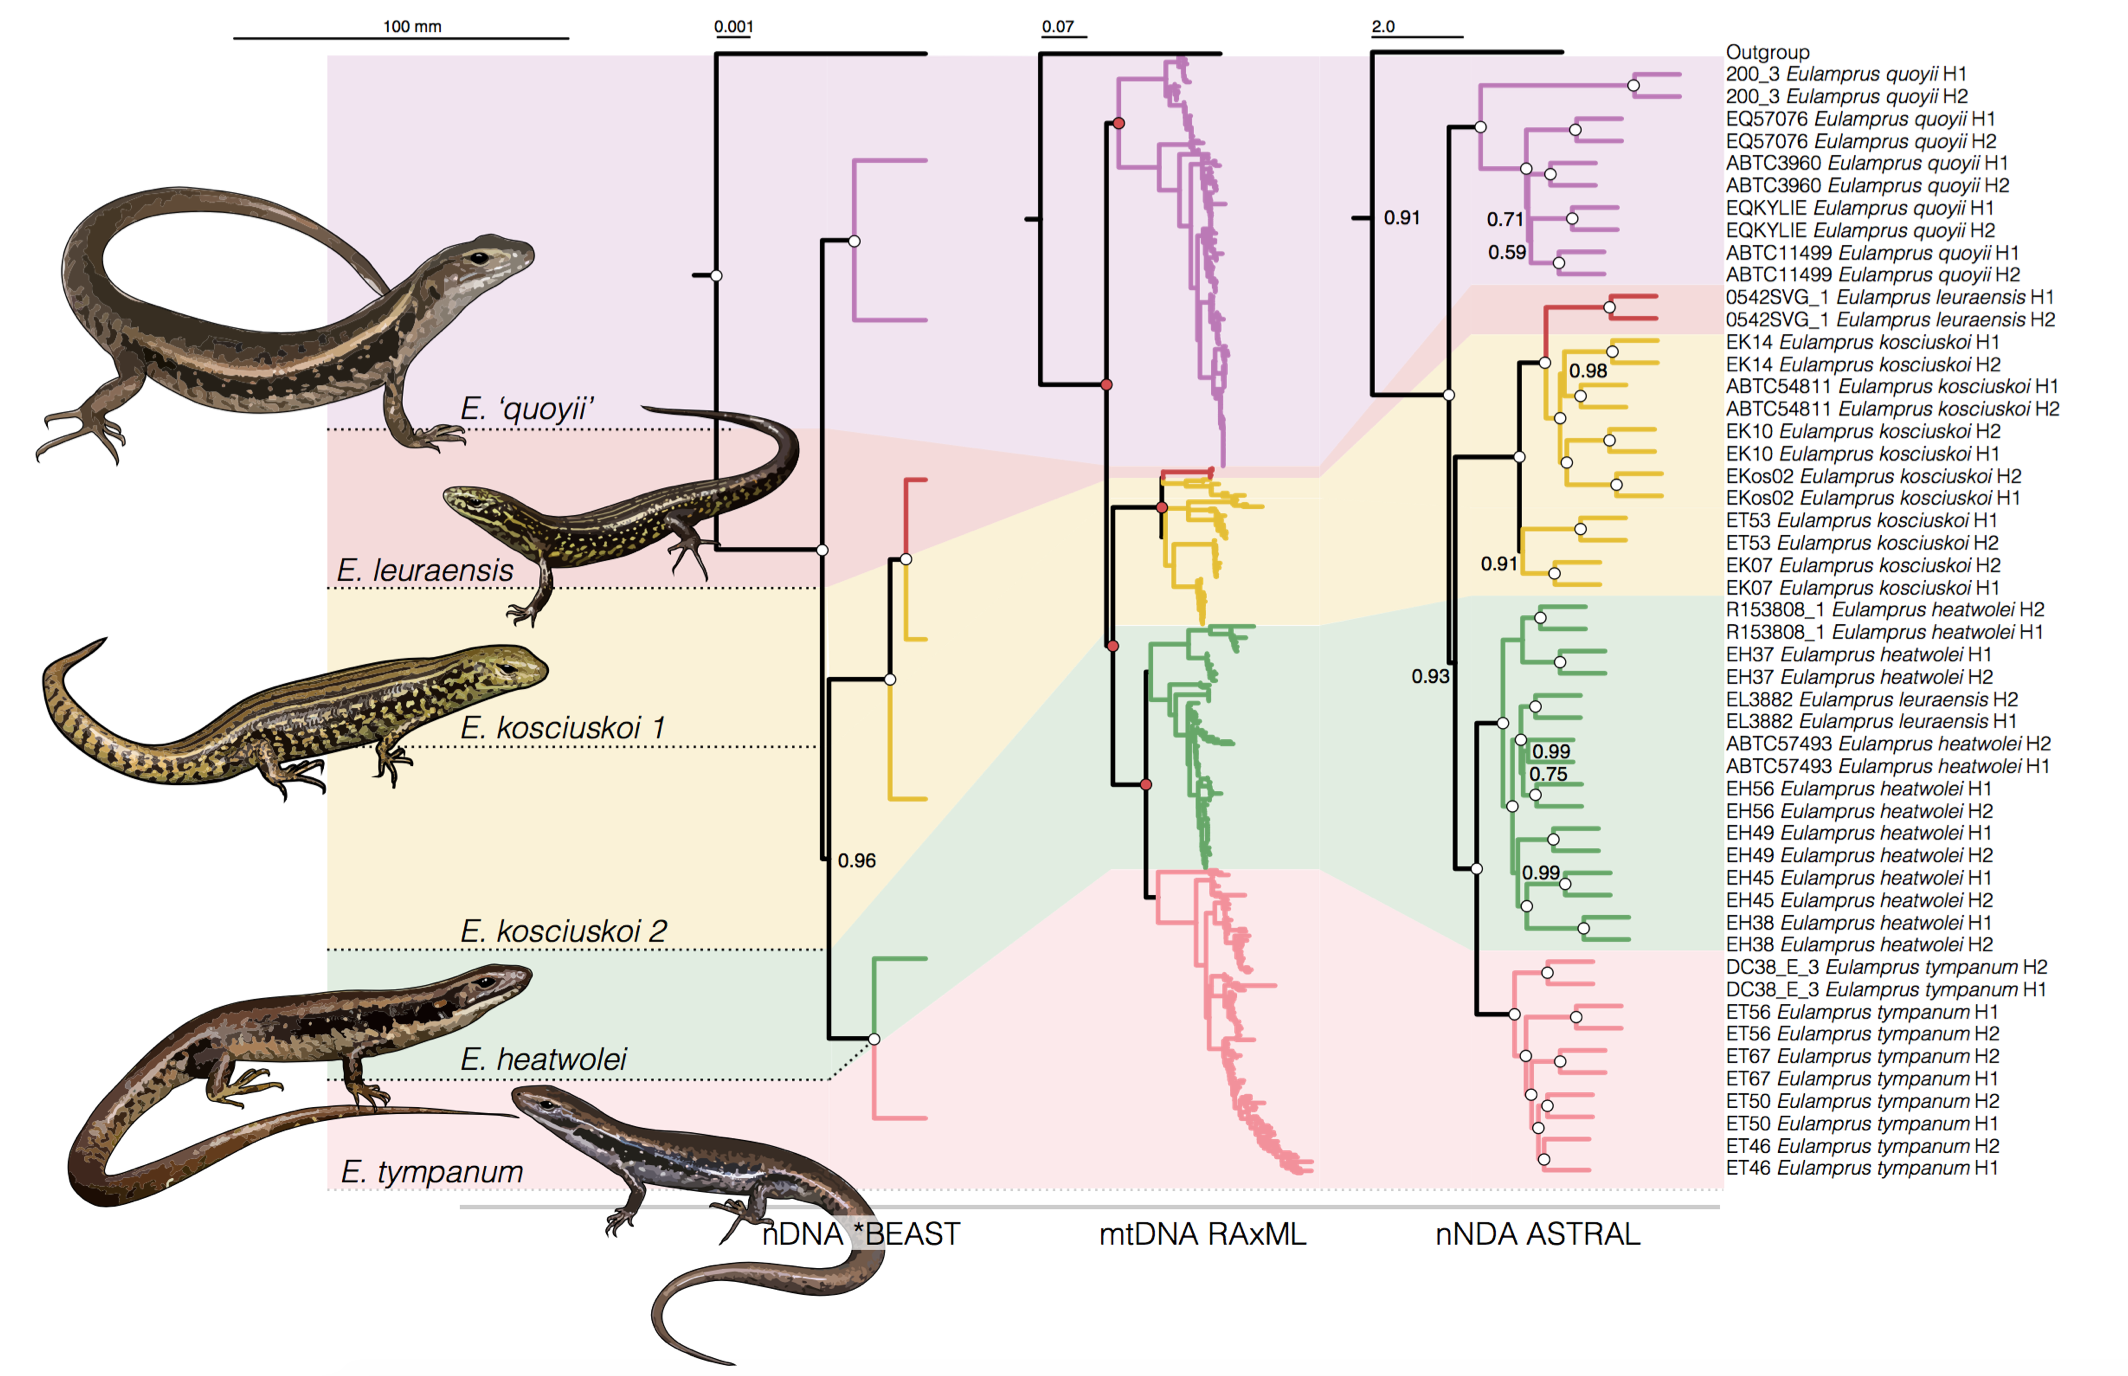 Phylogenetics of Water Skinks - (2018). Pepper, M., Sumner, J., Brennan, I.G., Hodges, K., Lemmon, A.R., Lemmon, A.M.,Peterson, G., Rabosky, D.L., Schwarzkopf, L., Scott, I.A.W., Shea, G., Keogh, J.S.Speciation in the mountains and dispersal by rivers: Molecular phylogeny of theAustralian Eulamprus water skinks and the biogeography of Eastern Australia.Journal of Biogeography 2018;45:2040-2052. Link or Download.